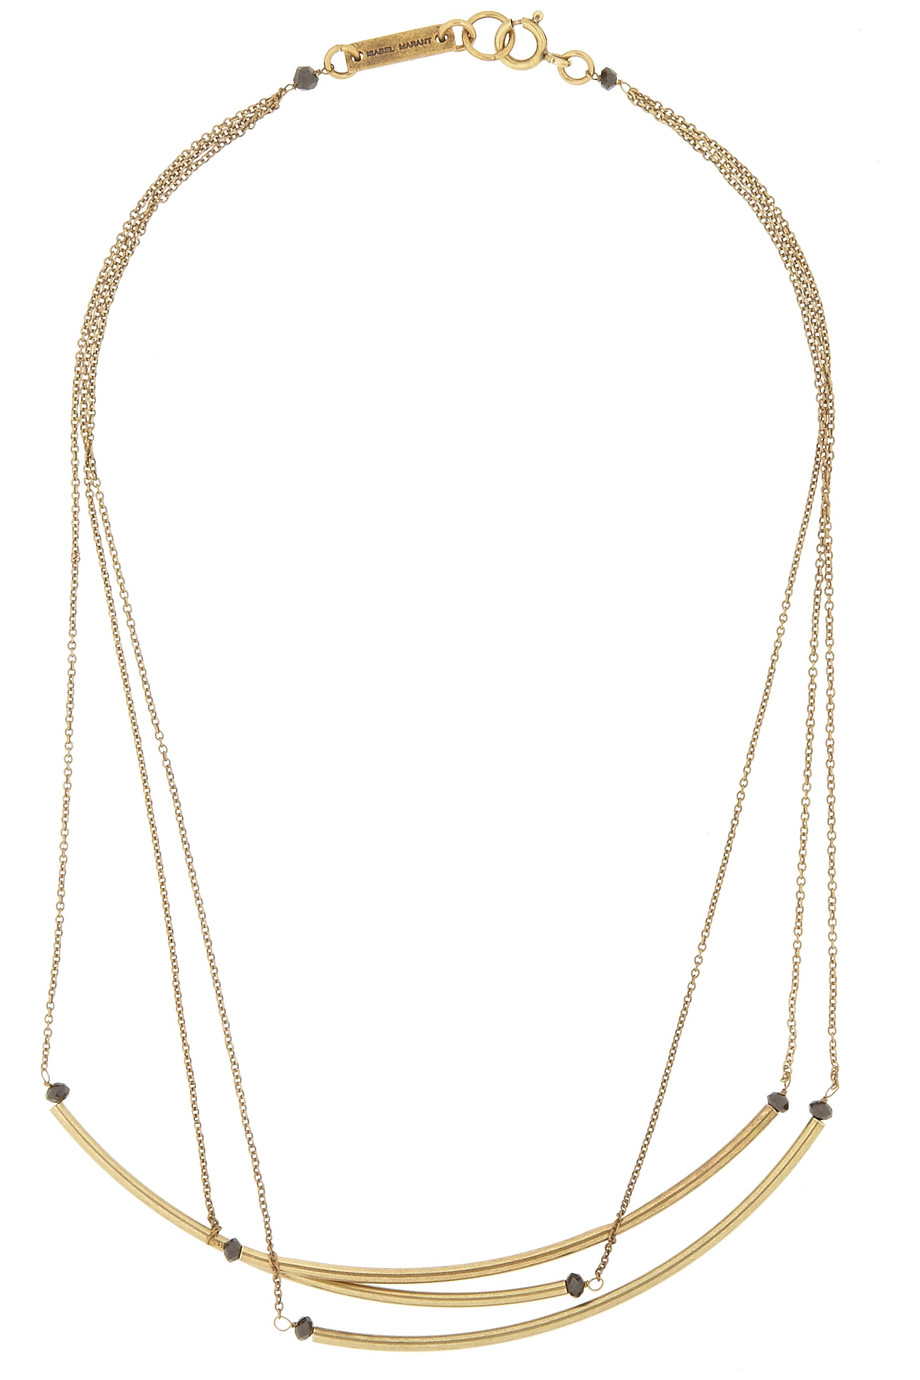 ISABEL MARANT Gold-tone and bead necklace, $180,  net-a-porter.com